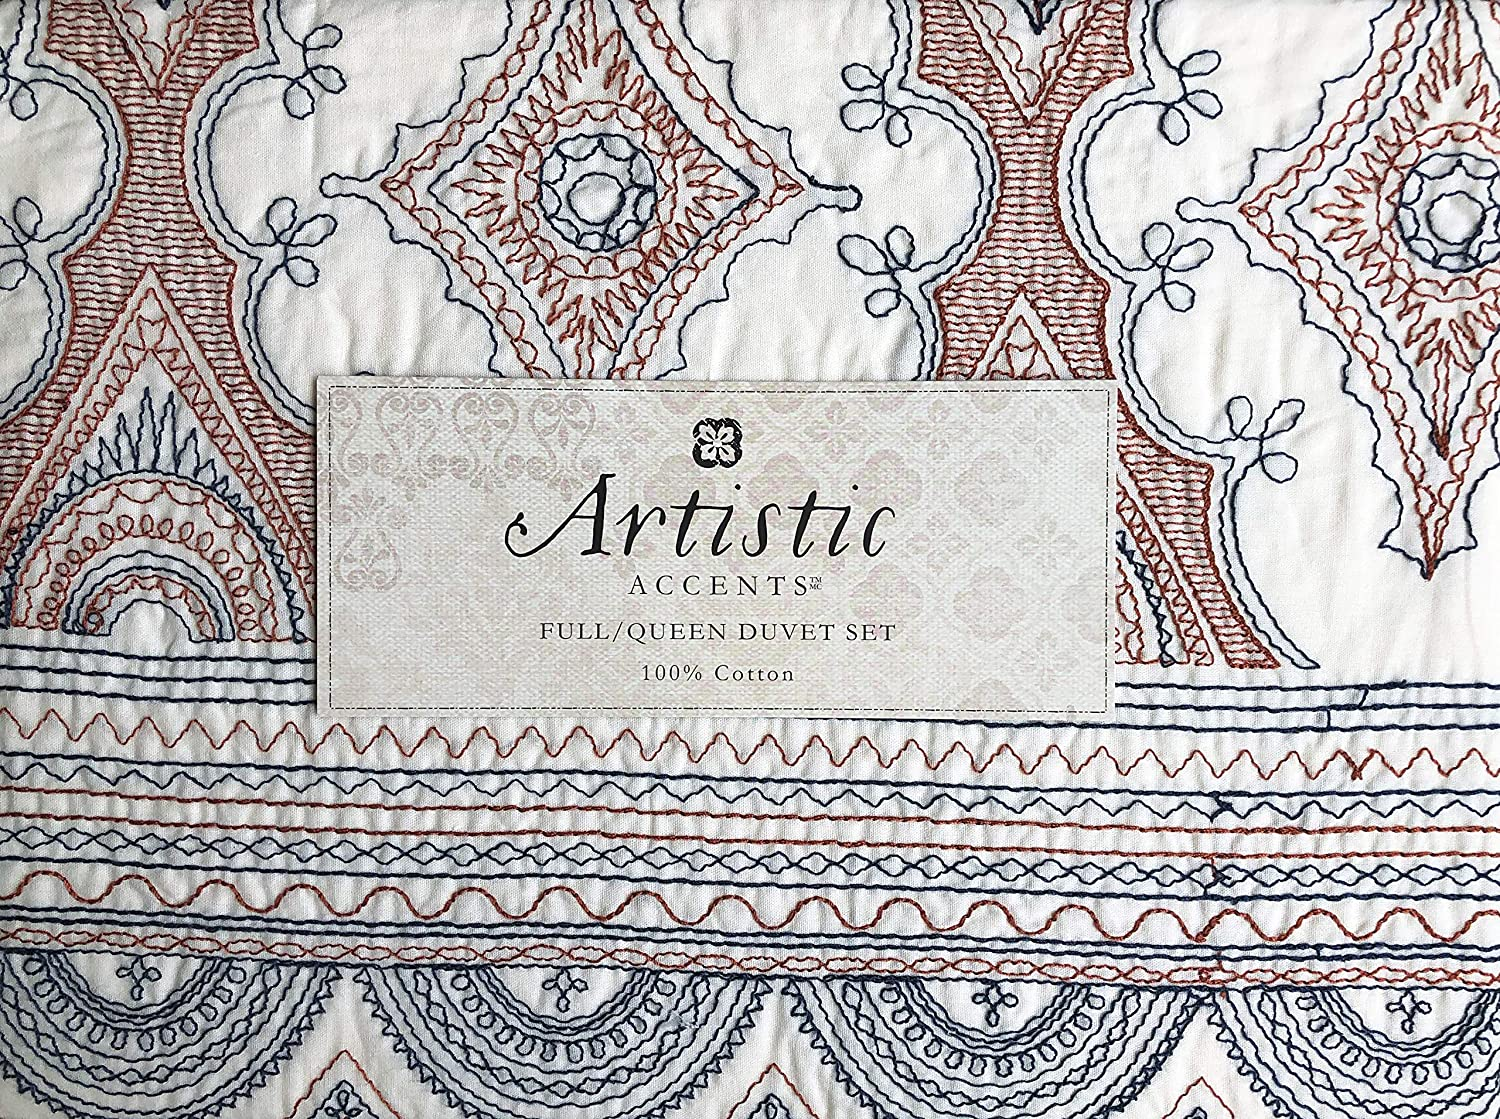 Artistic Accents Duvet Comforter Cover Set Home Bedding Fifer Texture Teracotta Full//Queen Size Luxury 3 Piece Embroidered Red Blue Thread Intricate Tapestry Boho Medallion Pattern on Cream